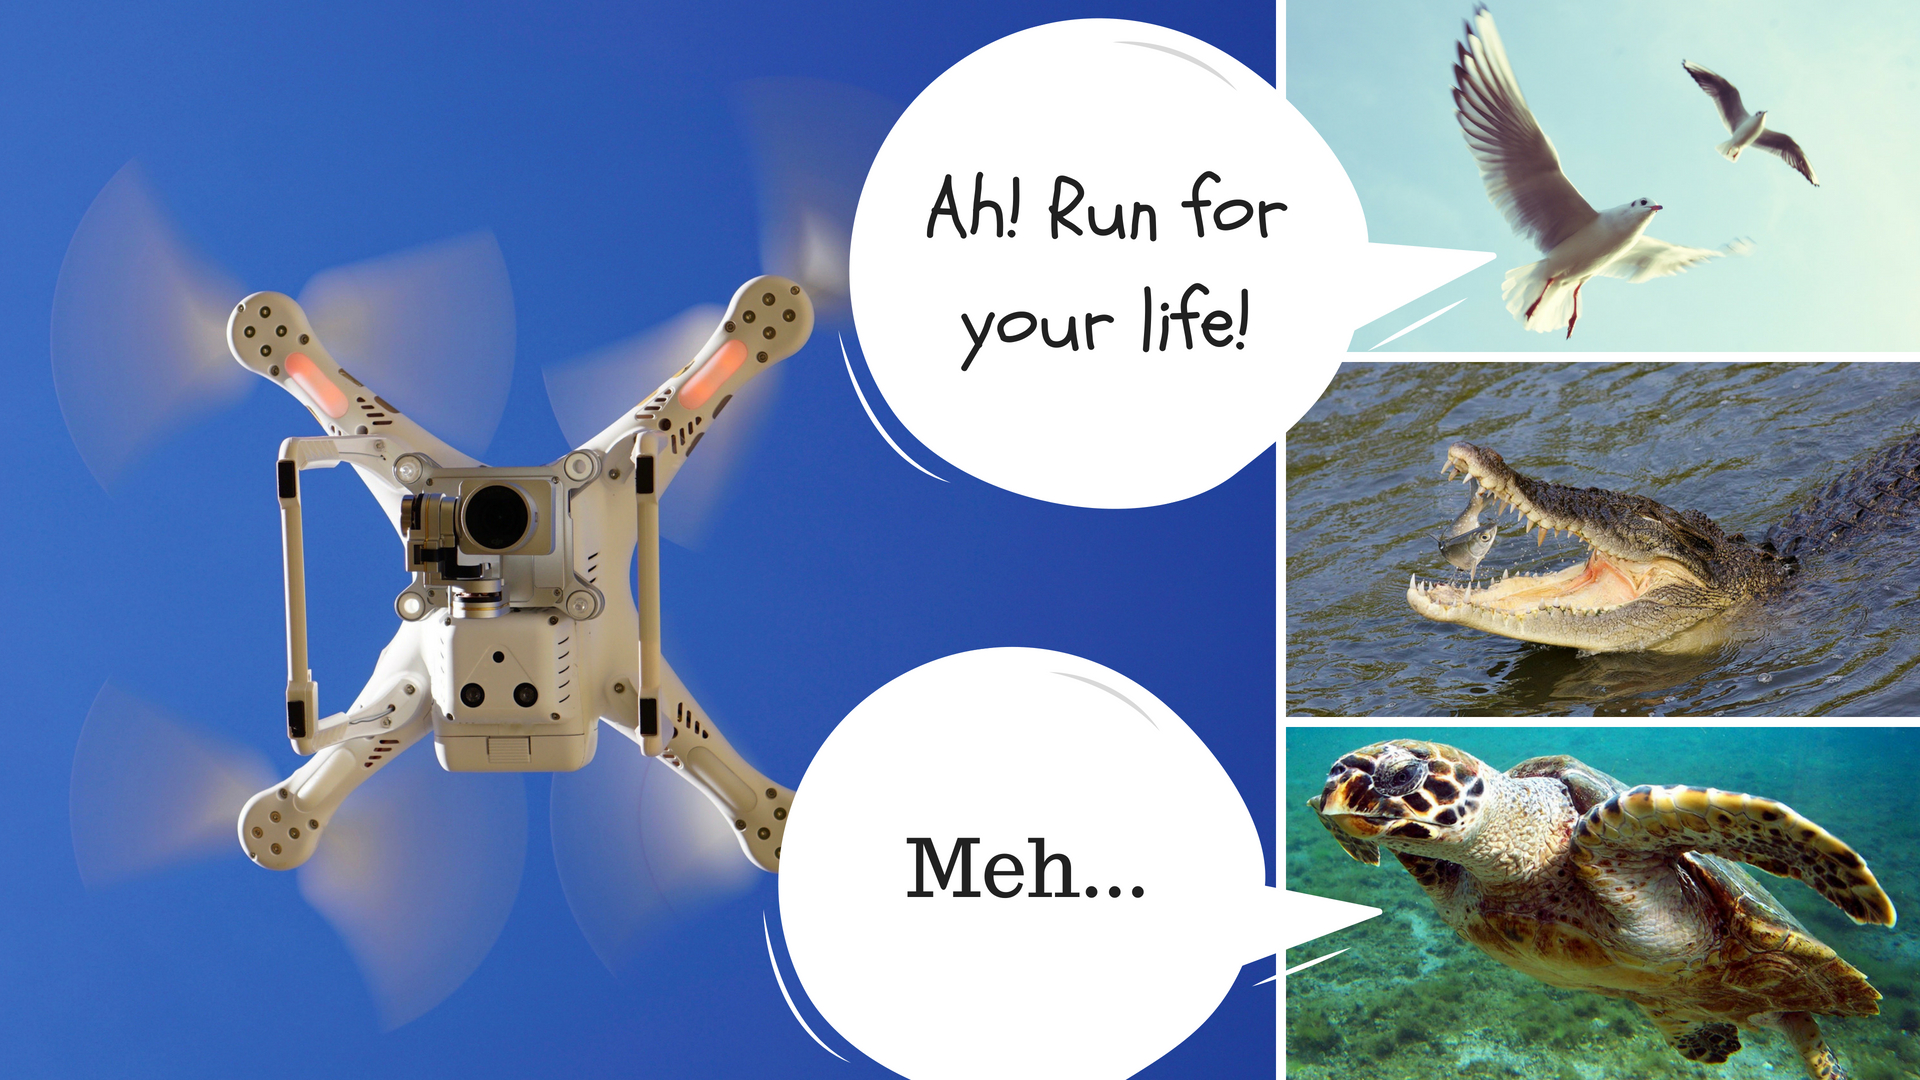 Turtles unbothered by close drone monitoring, while birds and crocodiles flee